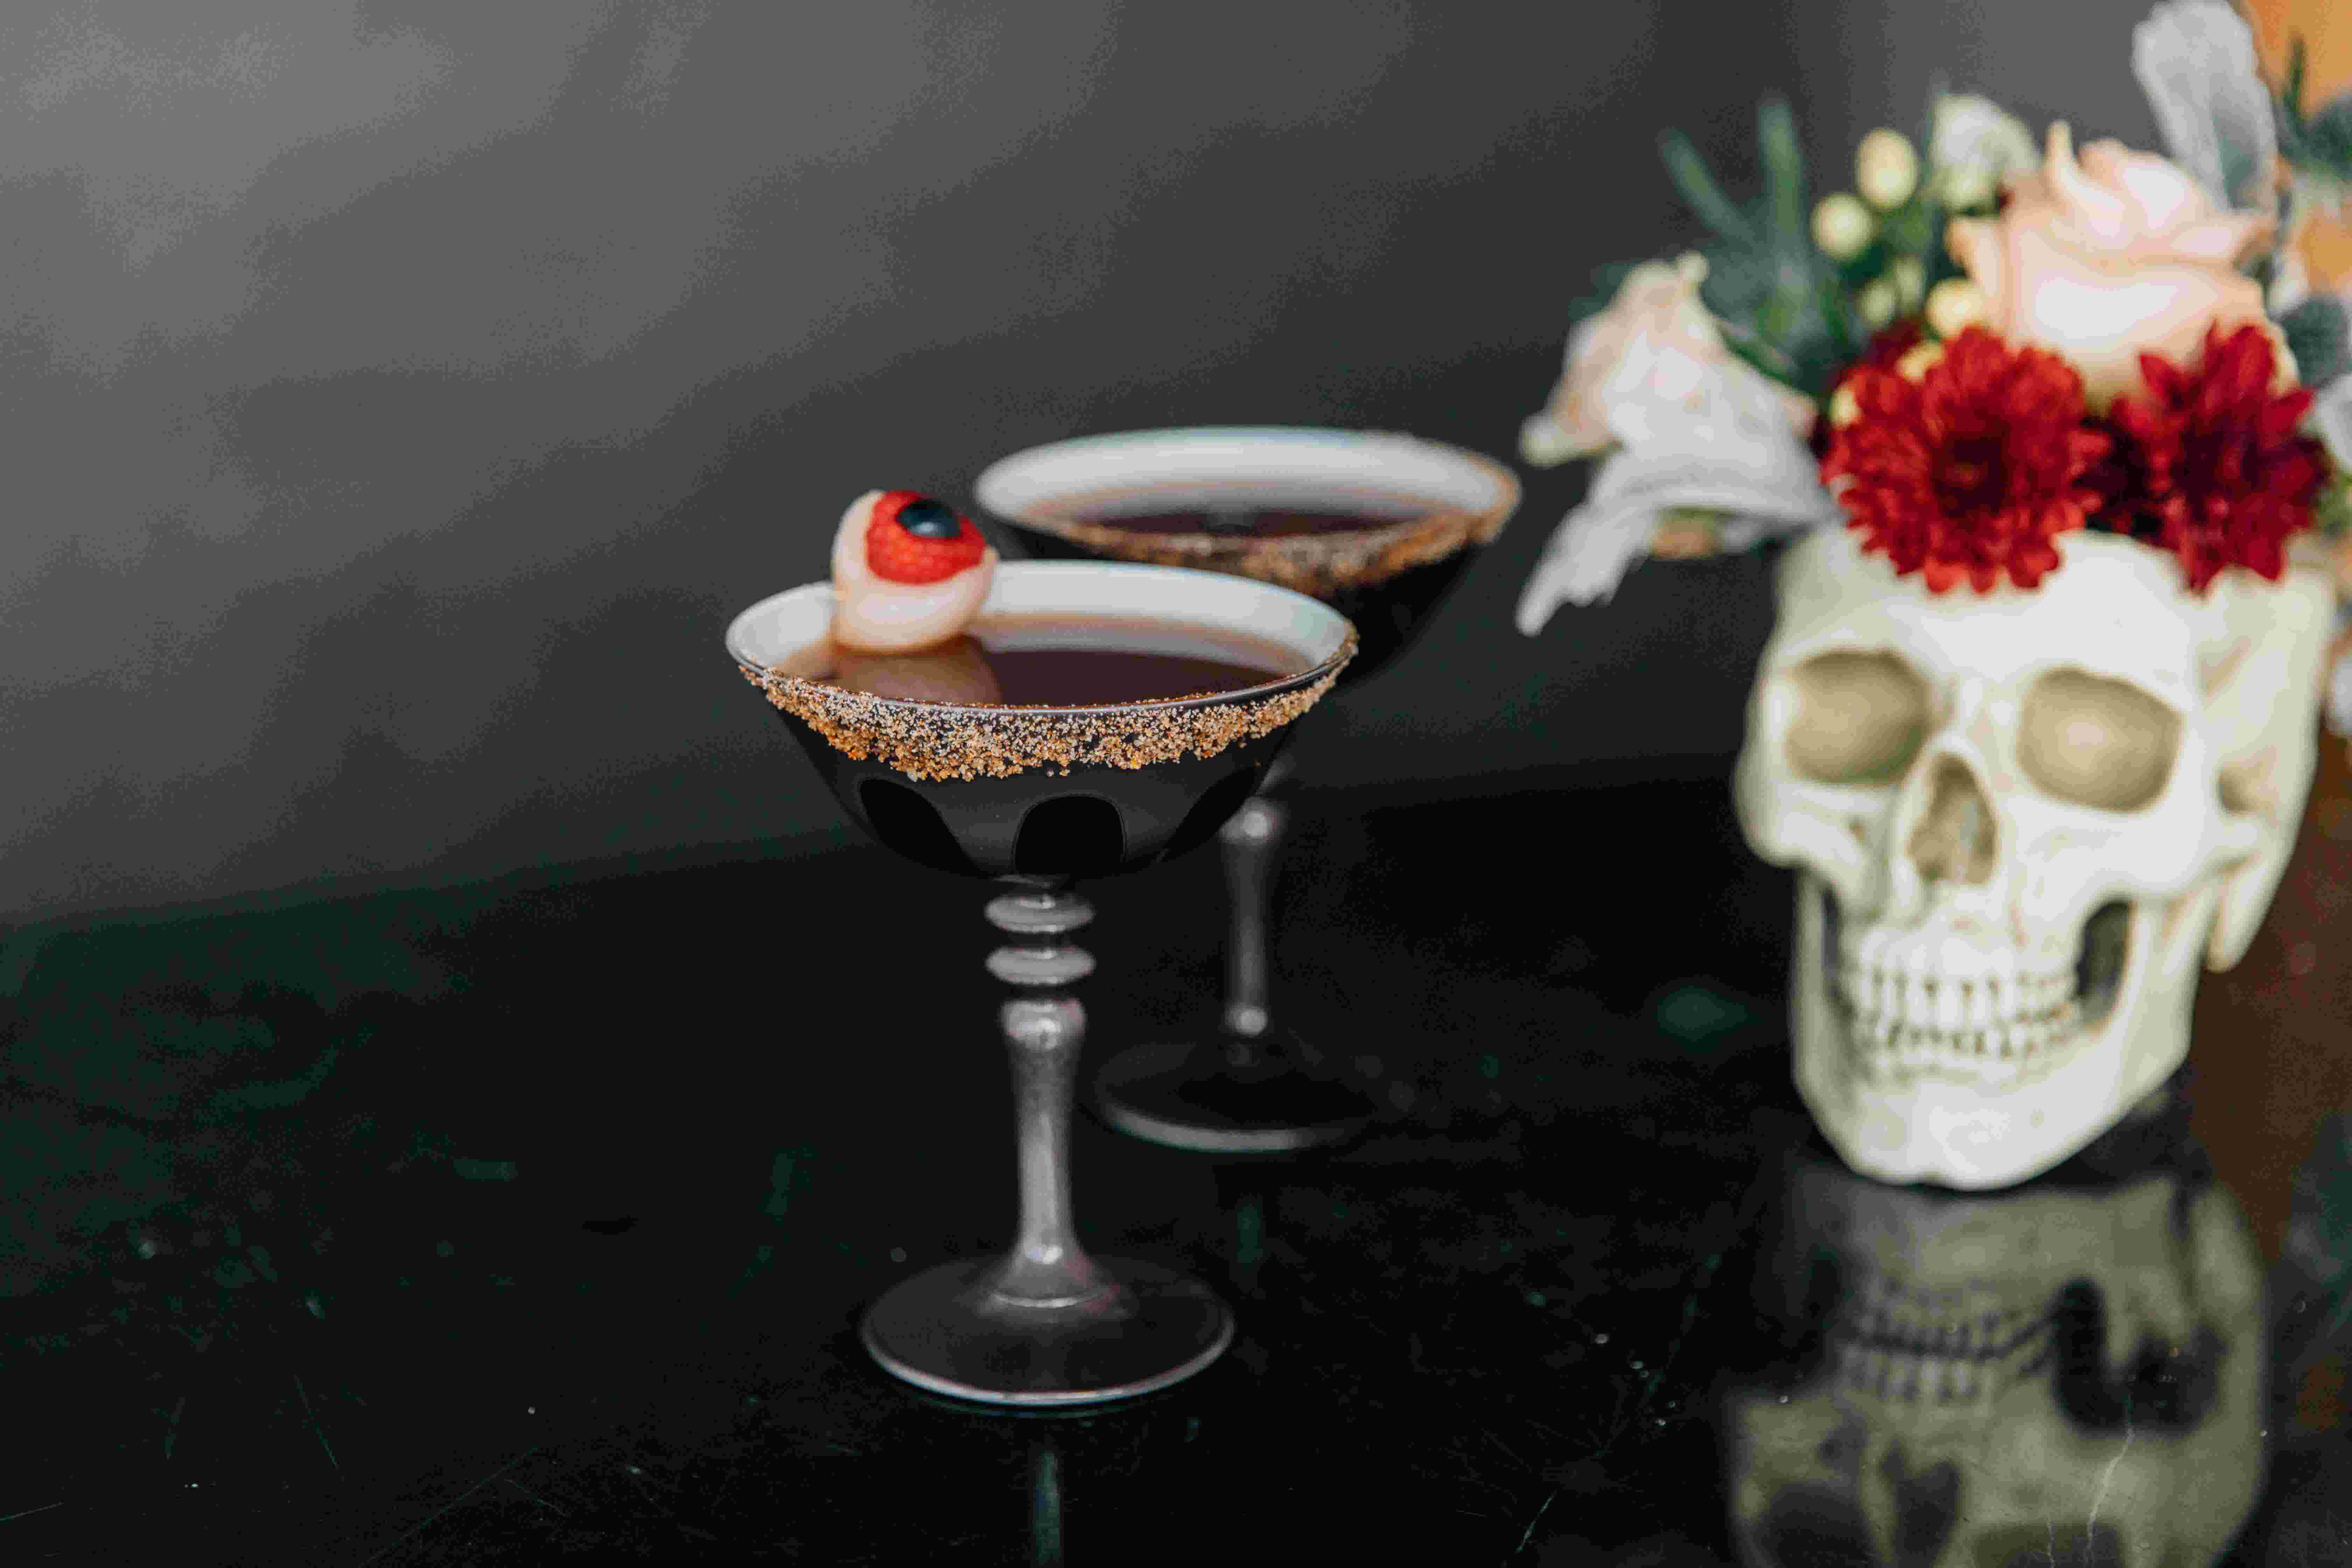 Two margaritas in grey coupe glasses, one with a fake eyeball candy garnish, in front of a skull decoration filled with flowers